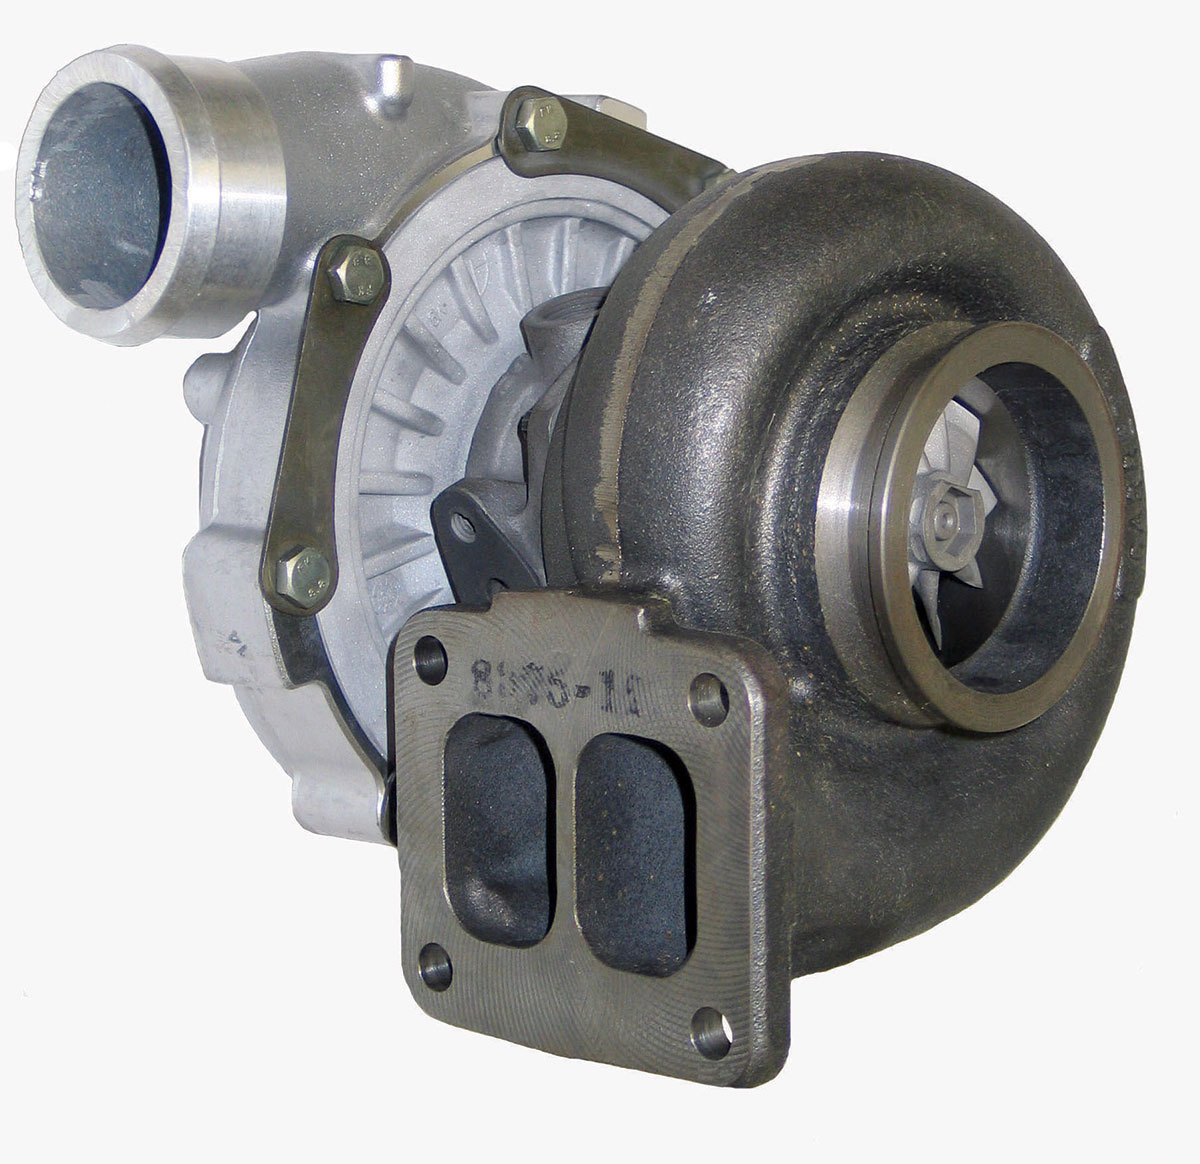 Garrett Releases Line Of Gtw Turbo Turbochargers: GT2860RS Turbocharger